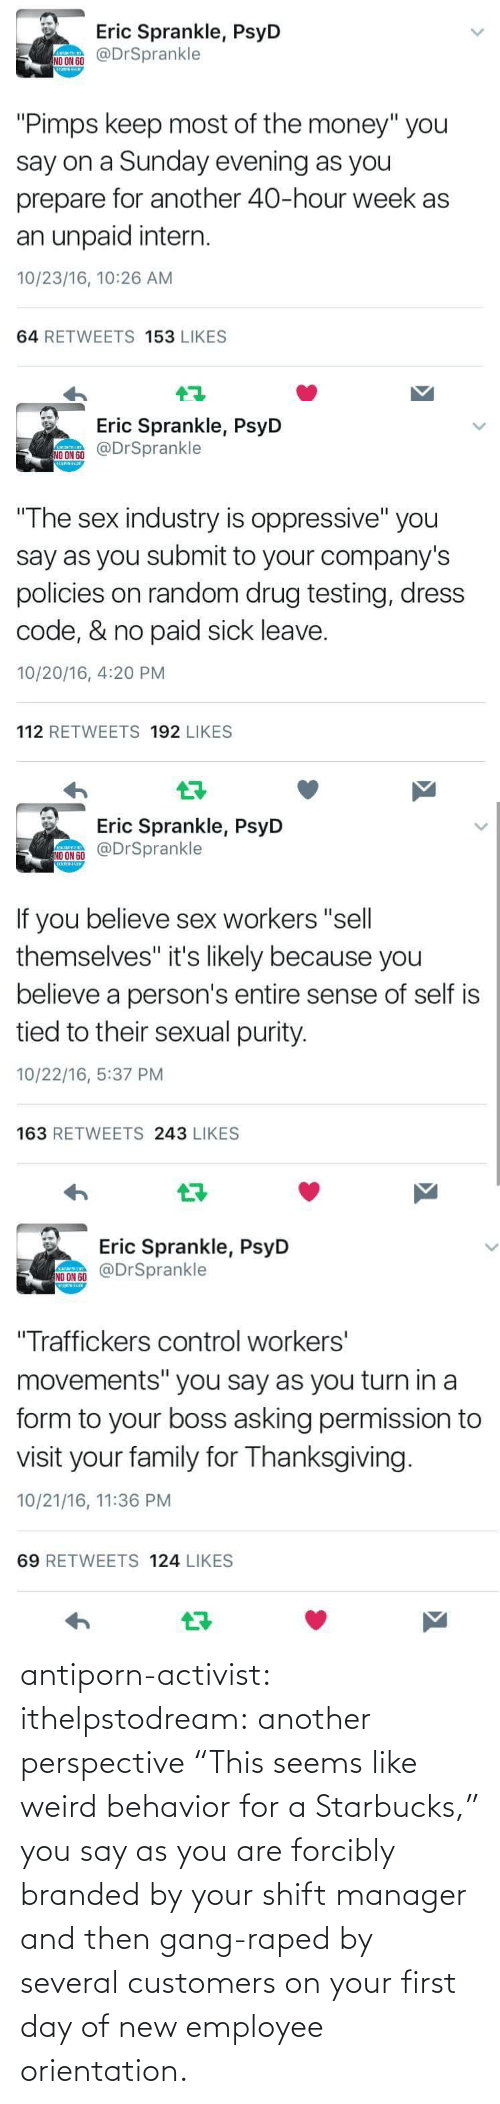 "weird: antiporn-activist:  ithelpstodream: another perspective ""This seems like weird behavior for a Starbucks,"" you say as you are forcibly branded by your shift manager and then gang-raped by several customers on your first day of new employee orientation."